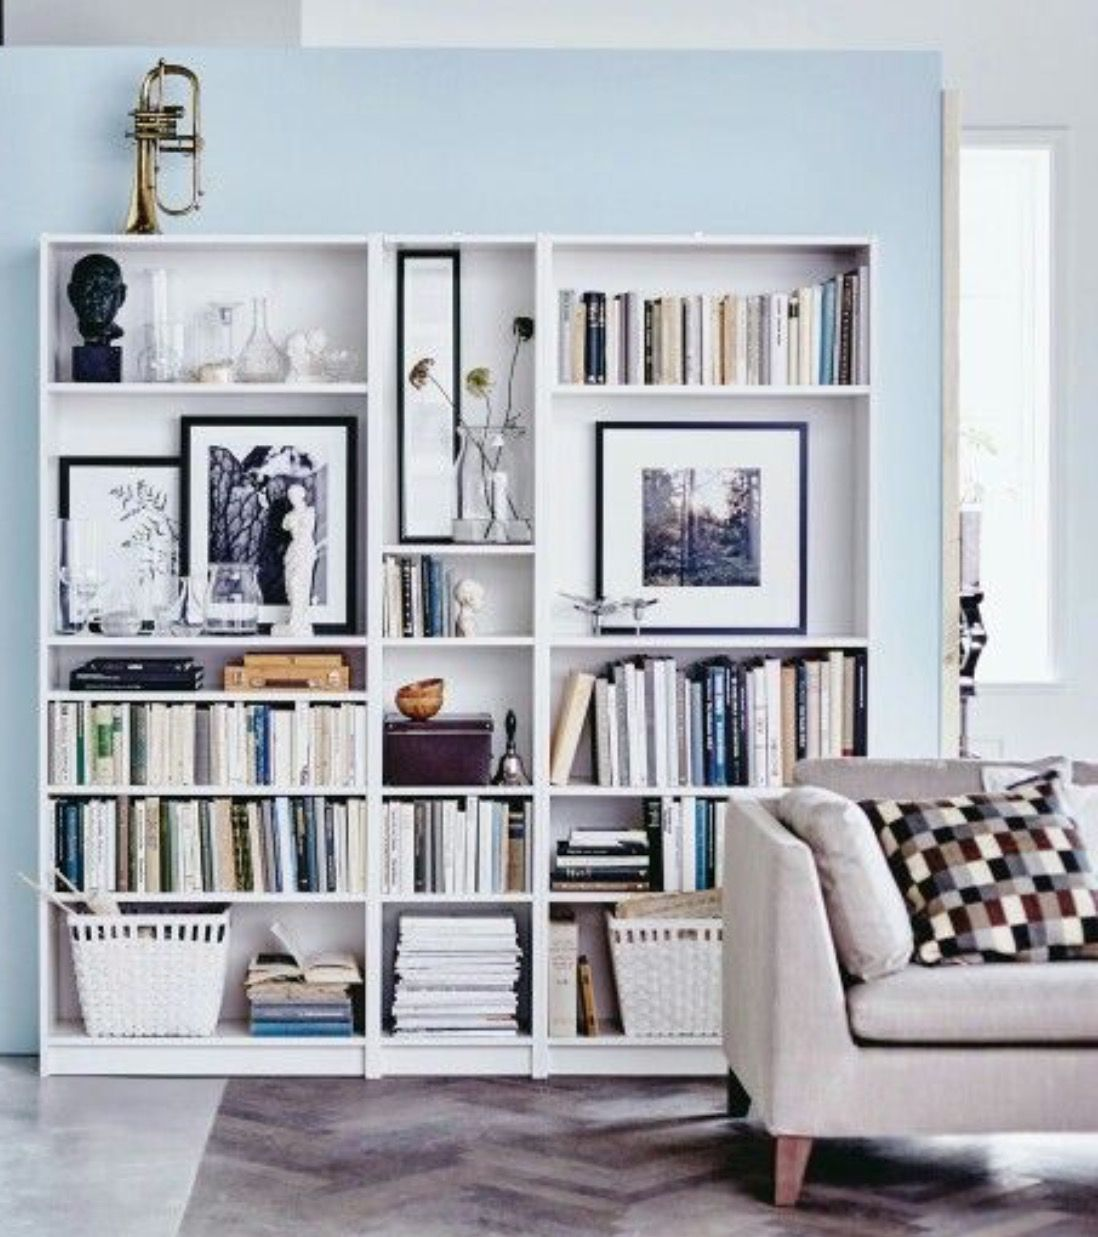 Wohnzimmer Arbeitszimmer Ideen Ikea Shelves Regal And Bücher Billy Bücherregal